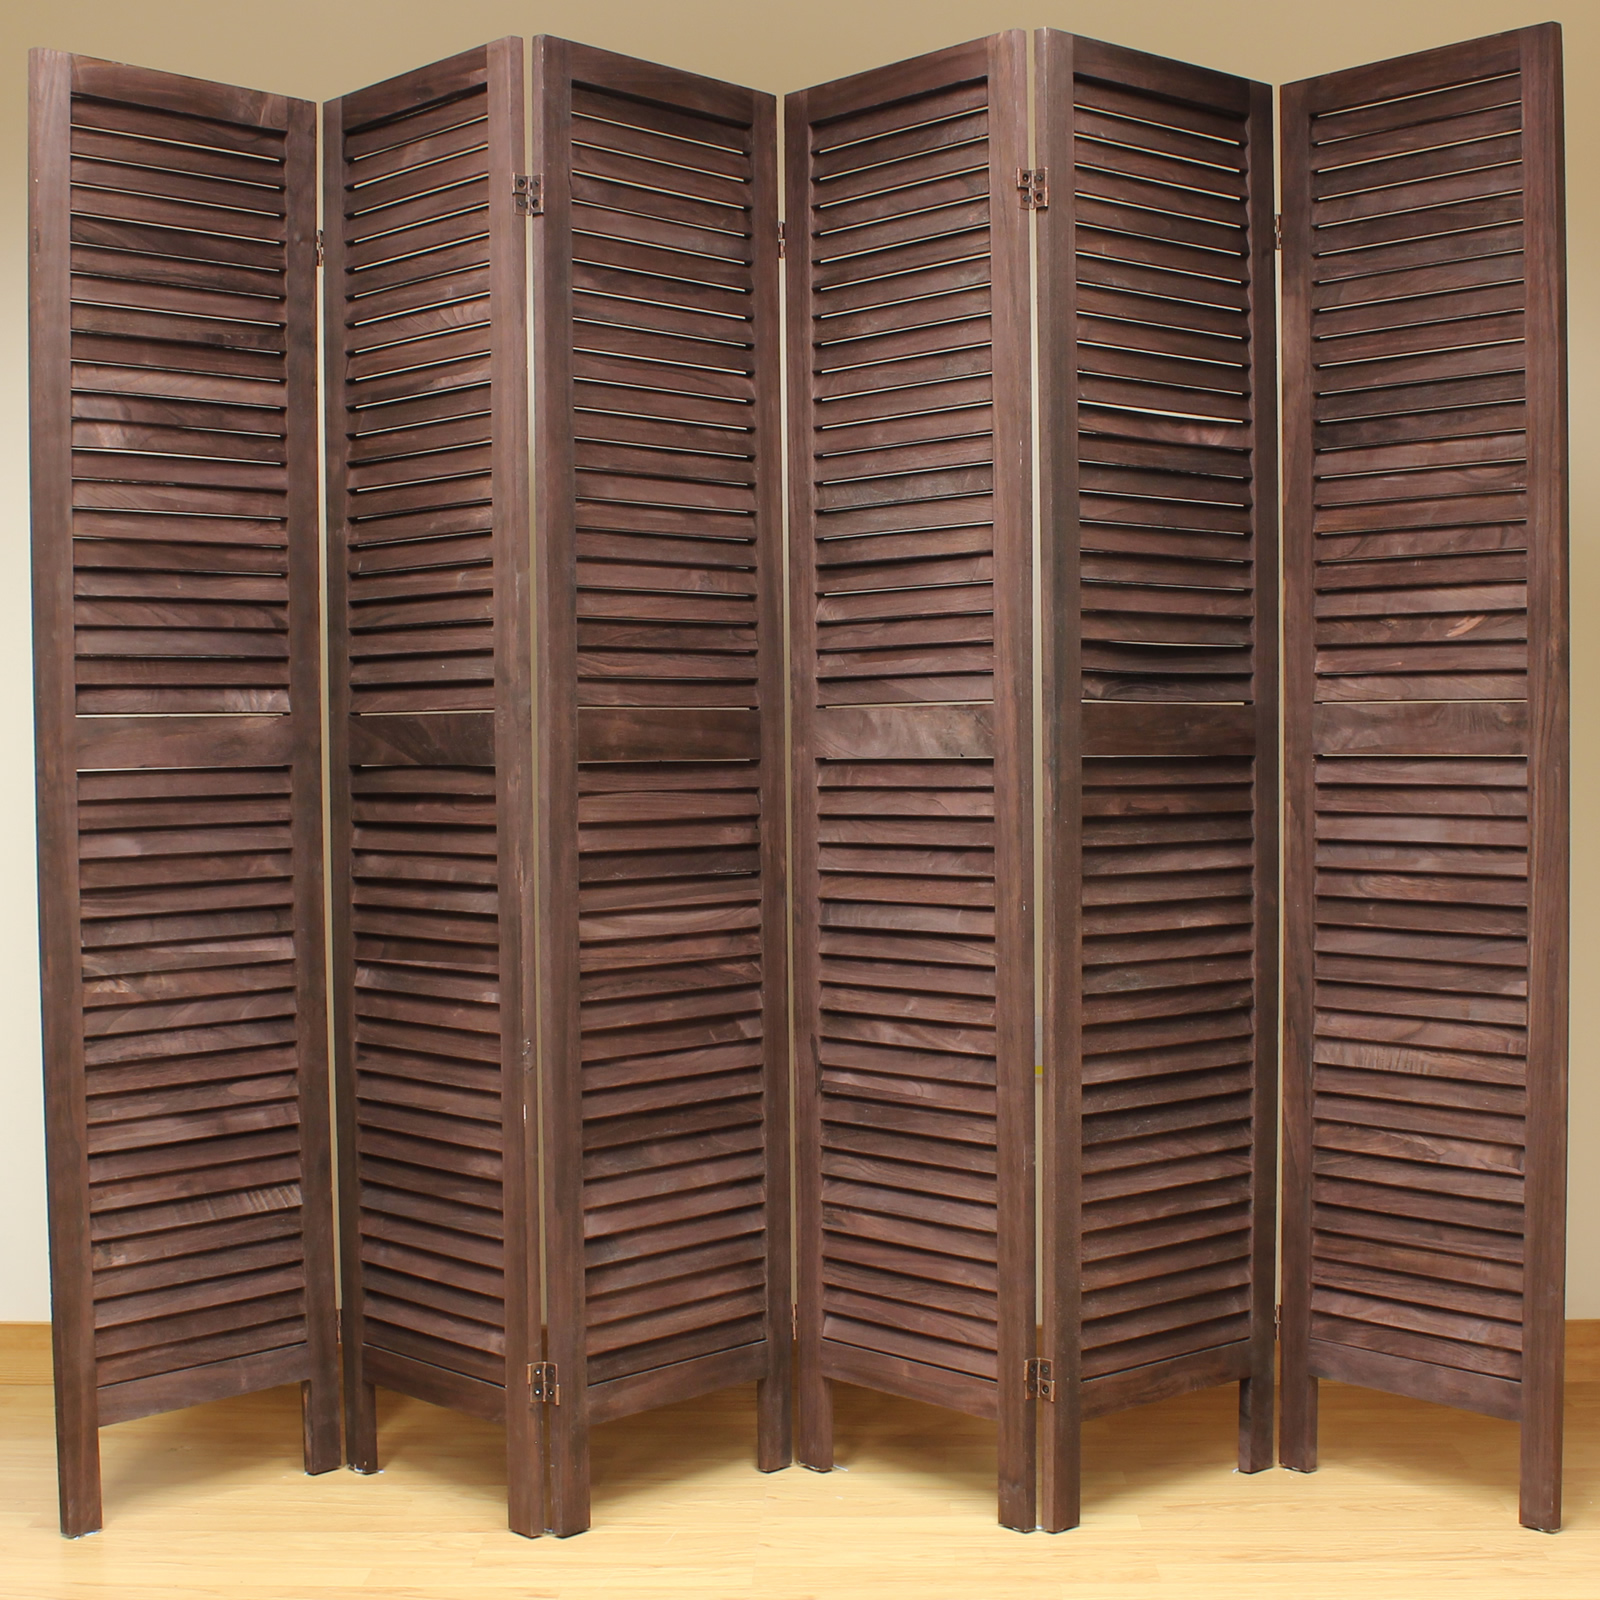 Wood Screens Room Dividers ~ Brown panel wooden slat room divider home privacy screen